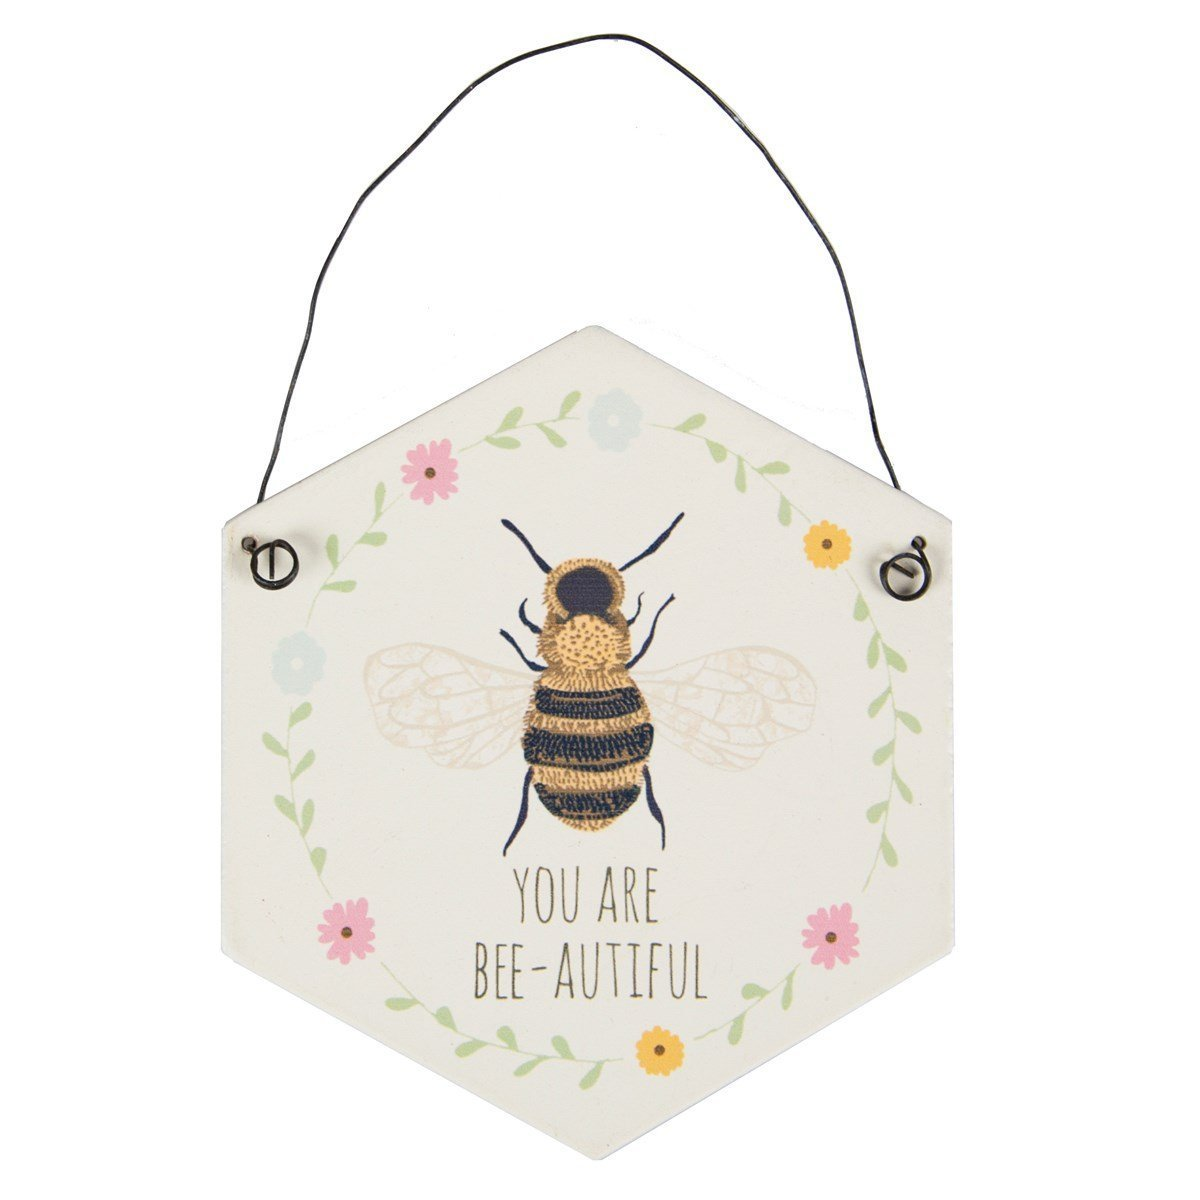 You Are Bee-autiful Hexagon Plaque image